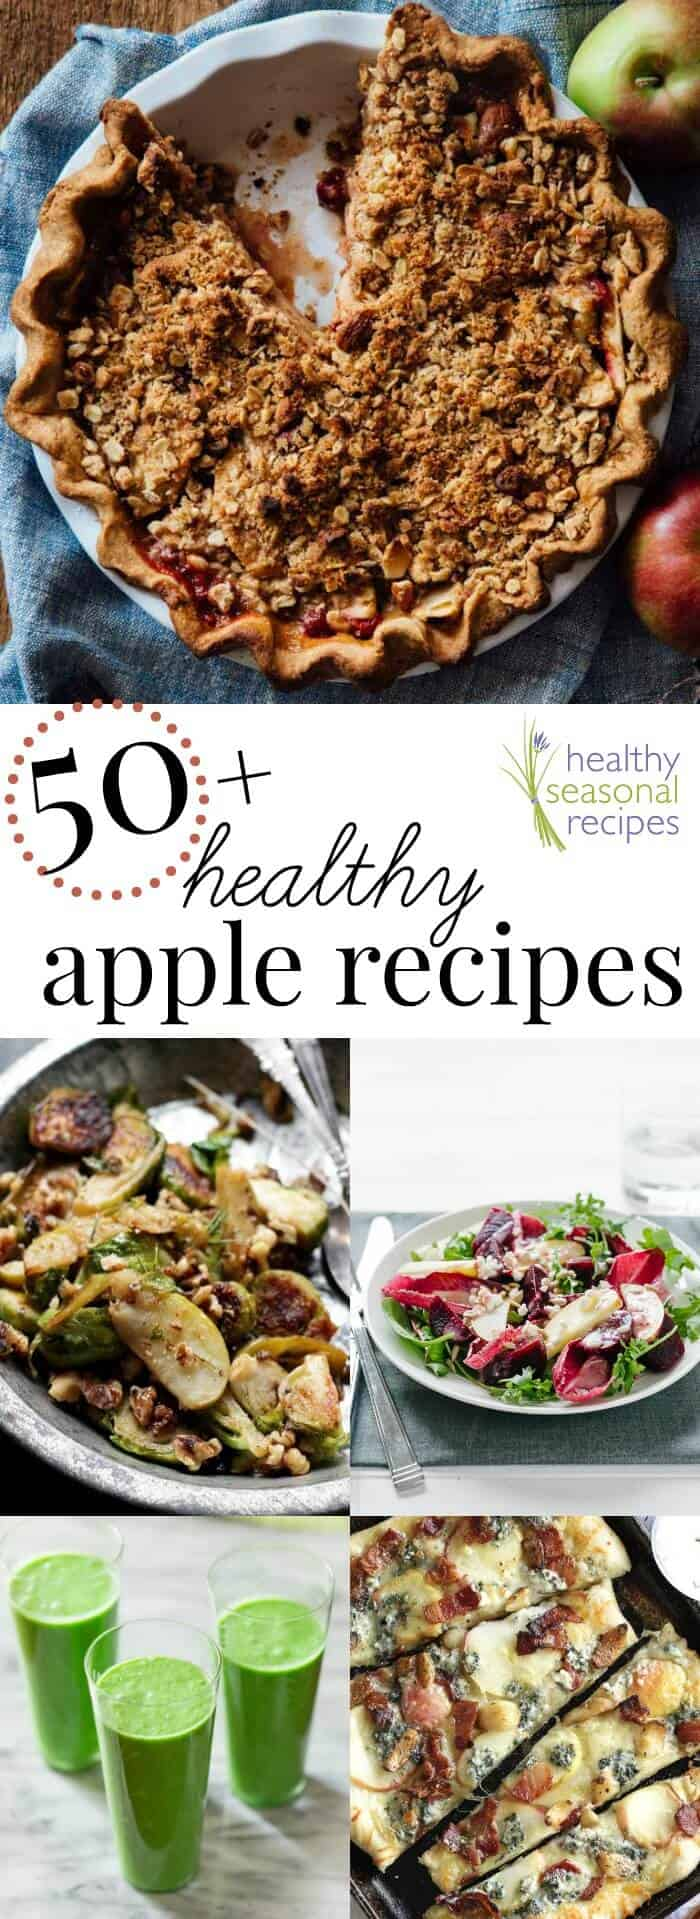 Apple recipes and pie photo collage with text overlay